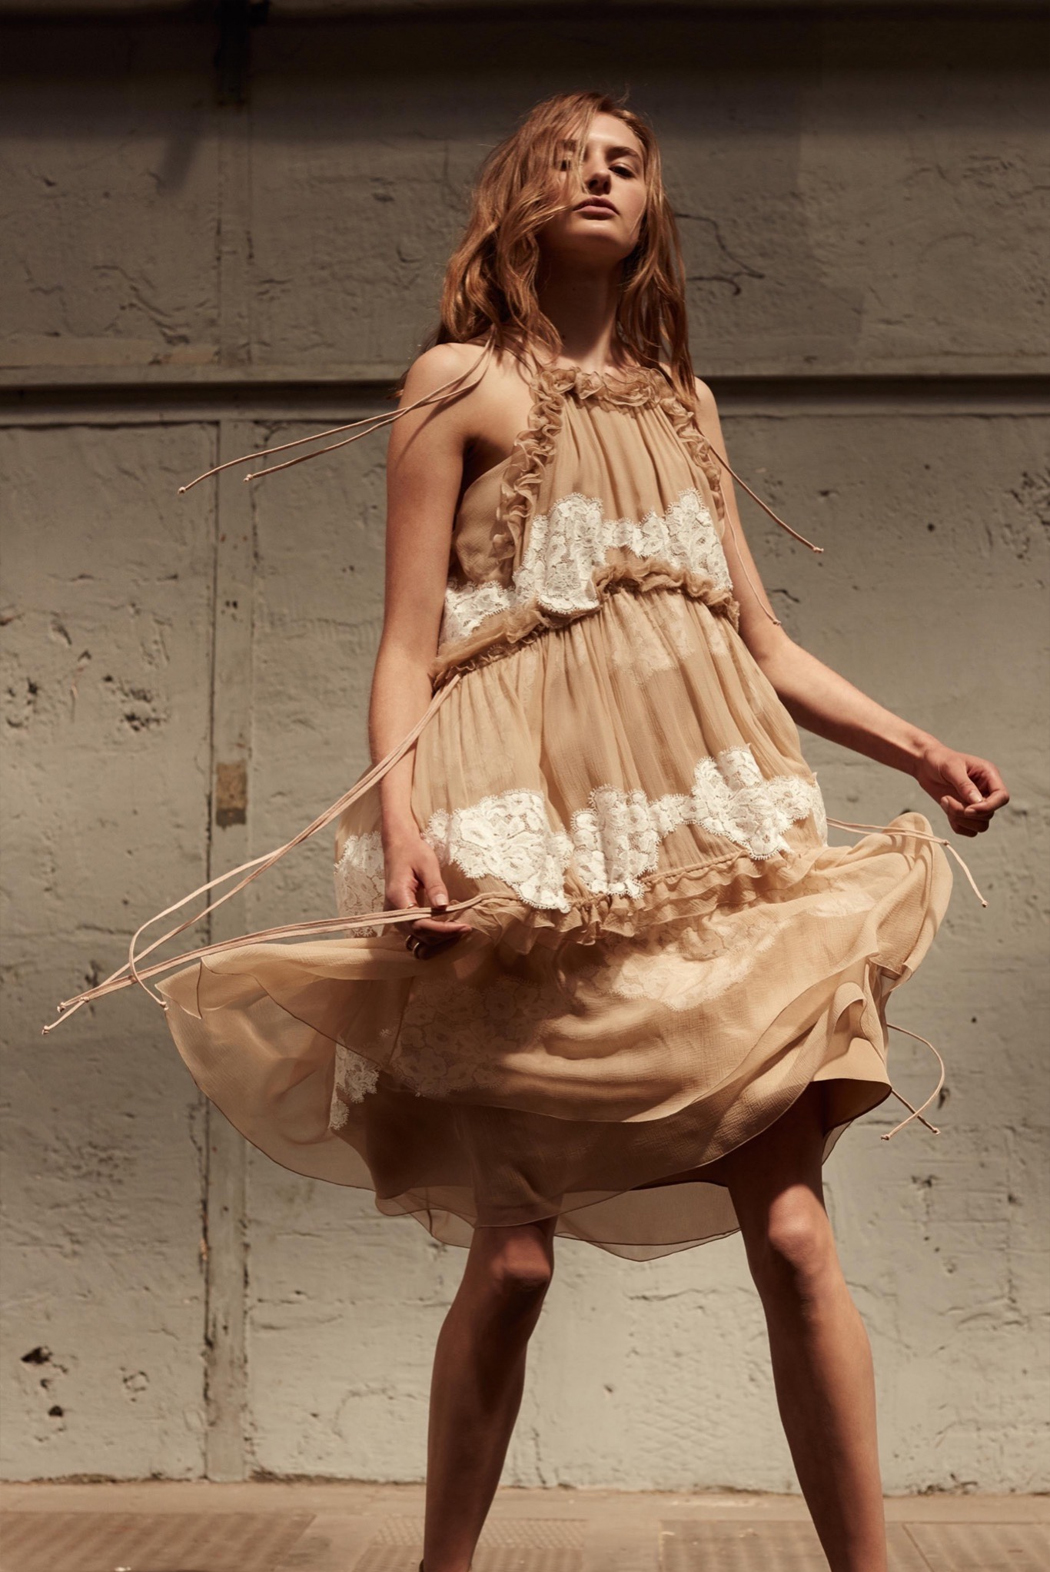 Retromantisch retro romantic fashion blog Chloé Resort 2016 collection dresses ruffle floral lace